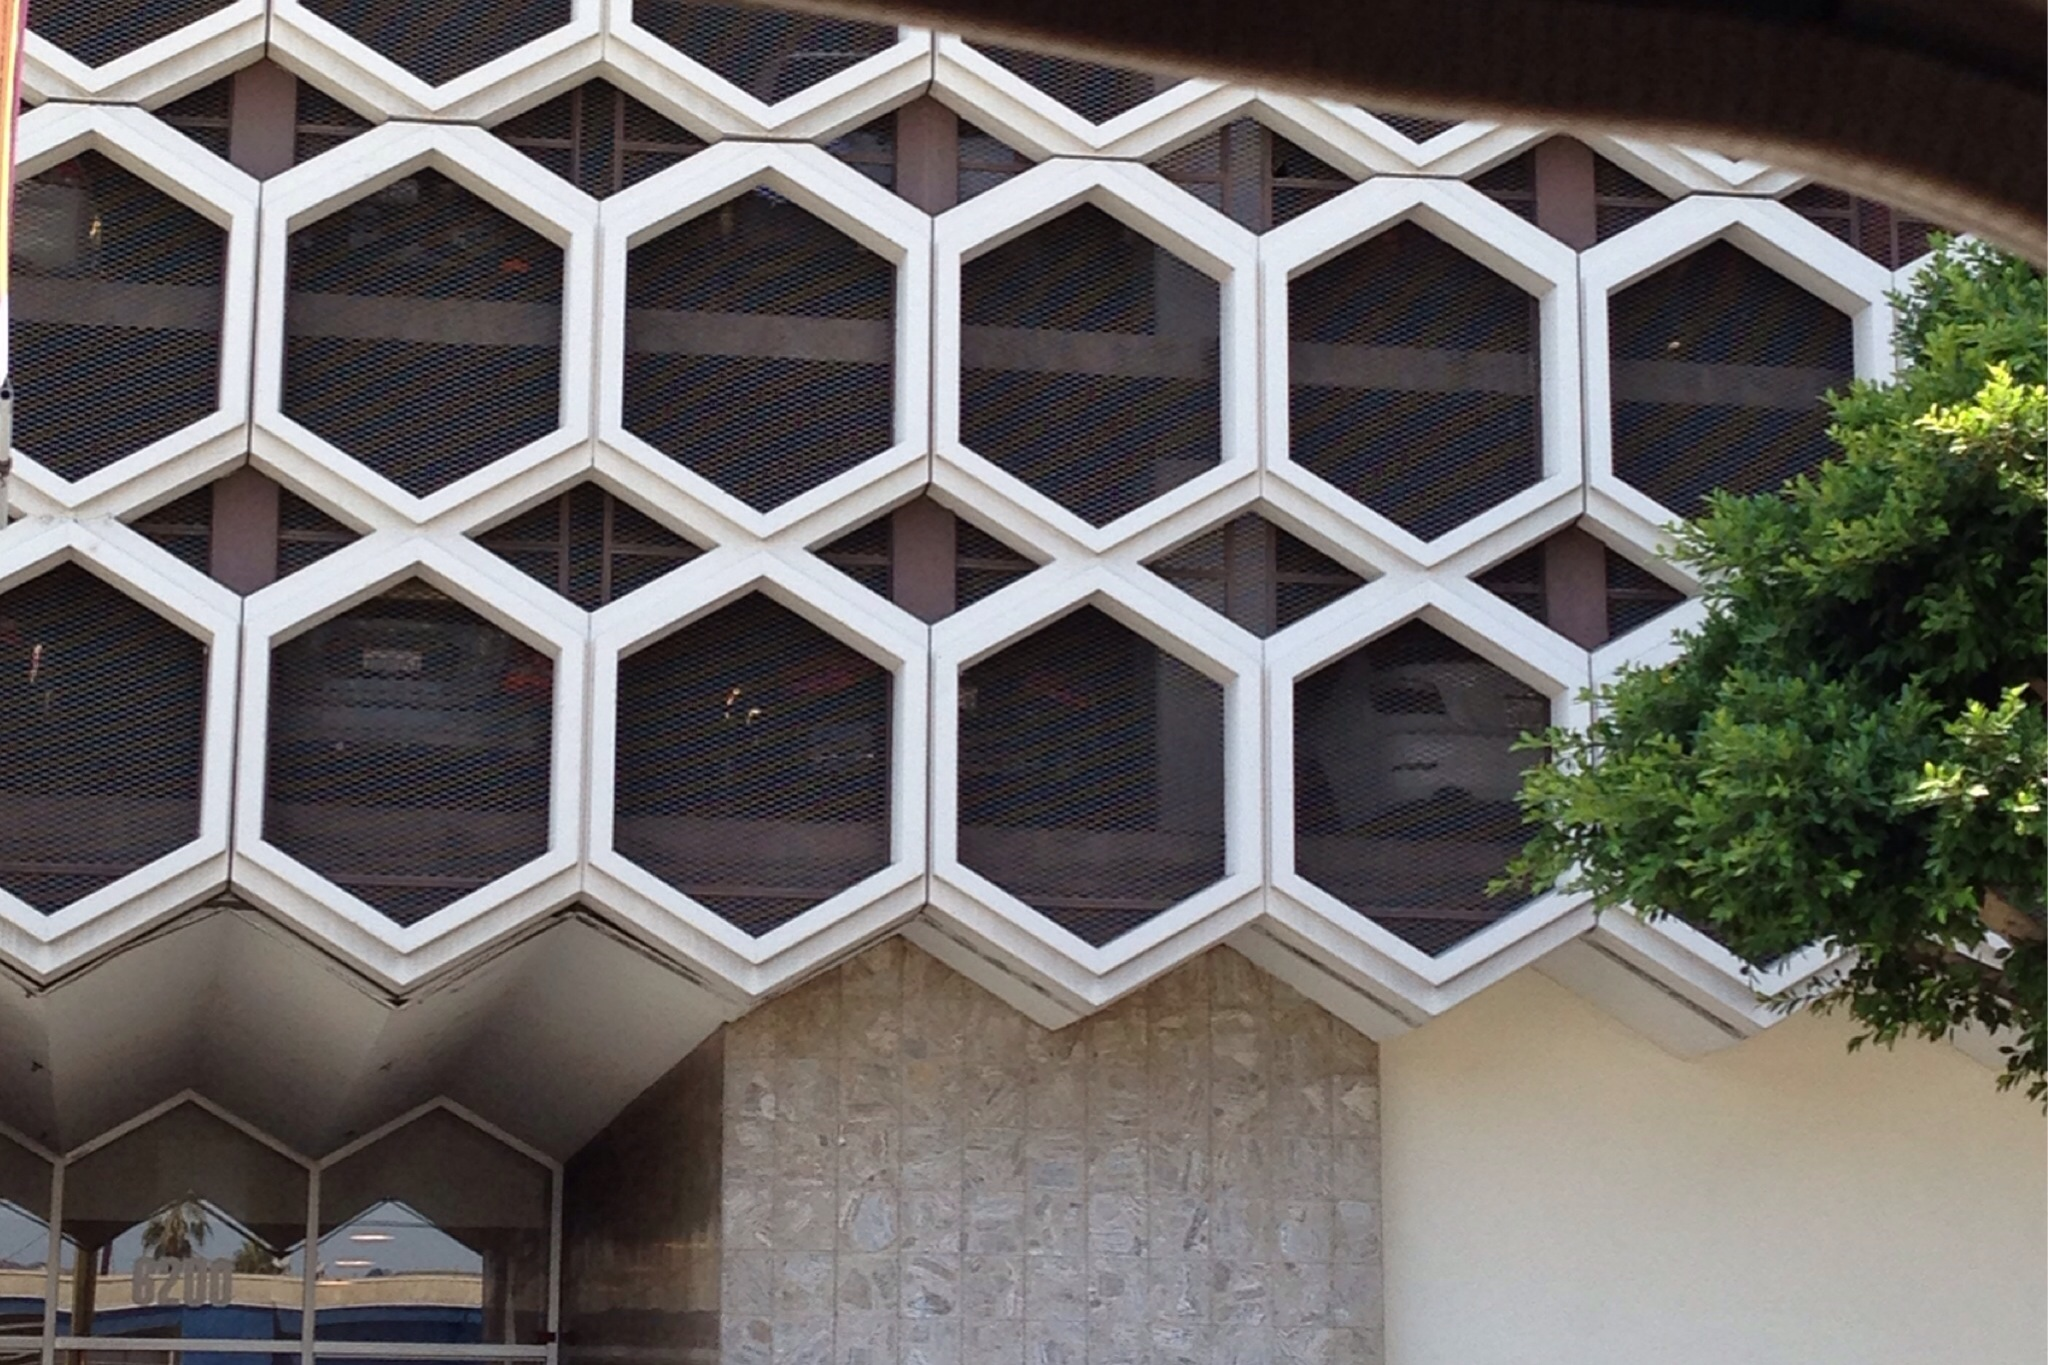 Parking structure on Wilshire Boulevard with interlocking hexagons